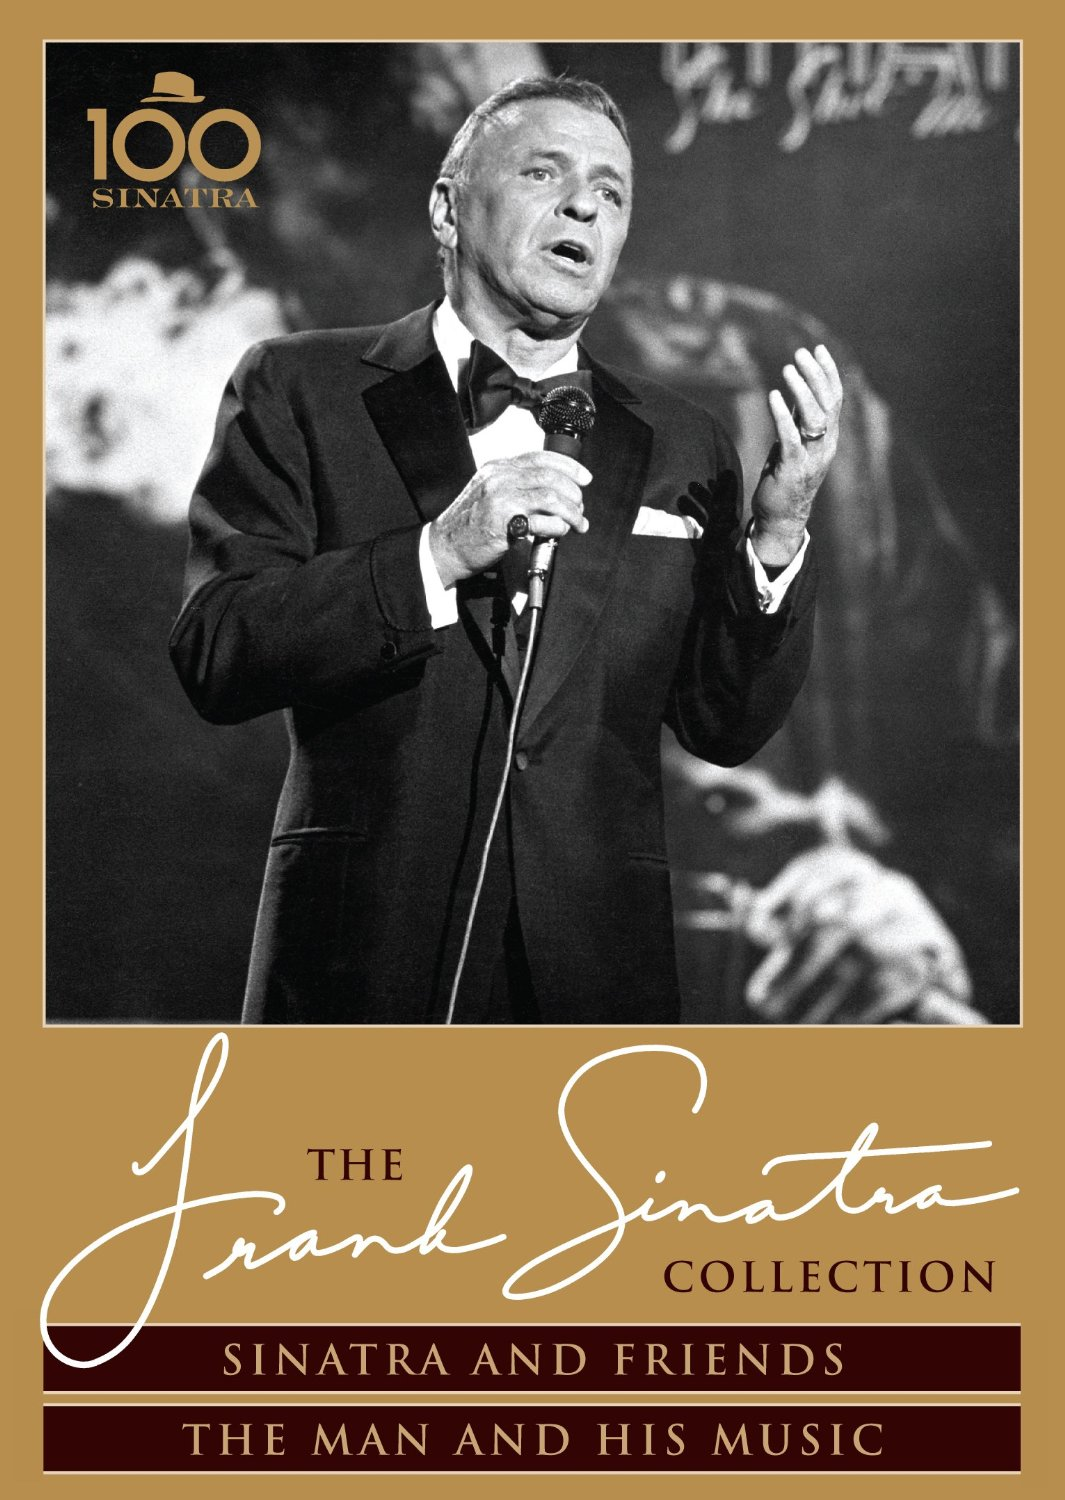 Frank Sinatra - Sinatra And Friends + The Man And His Music